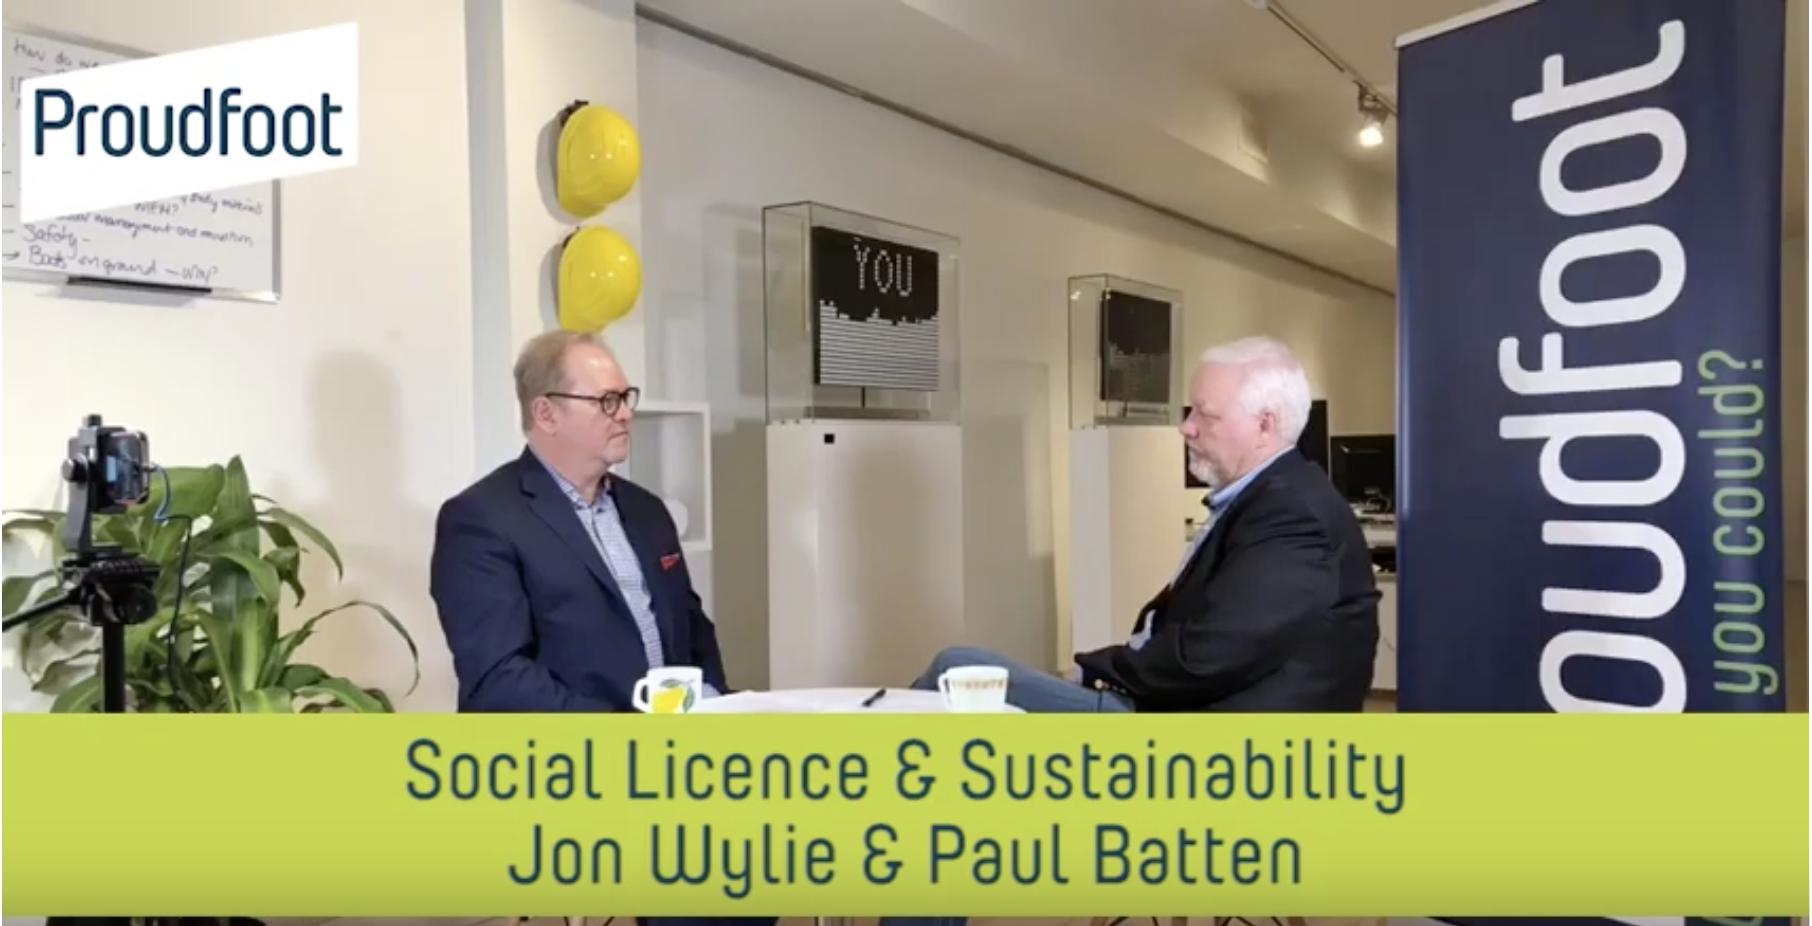 Proudfoot Social License Sustainability